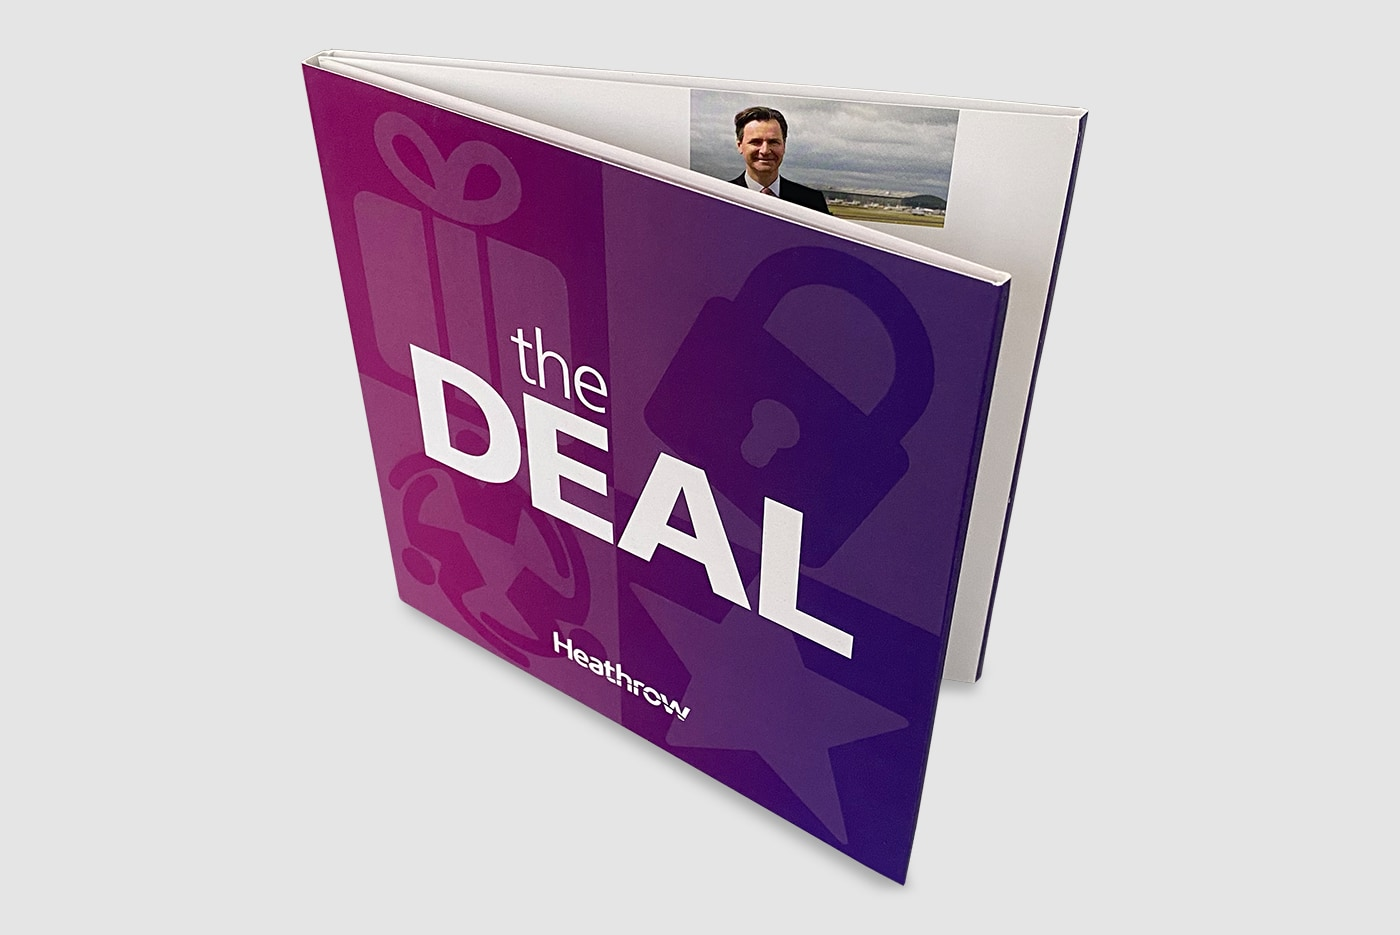 Heathrow The Deal